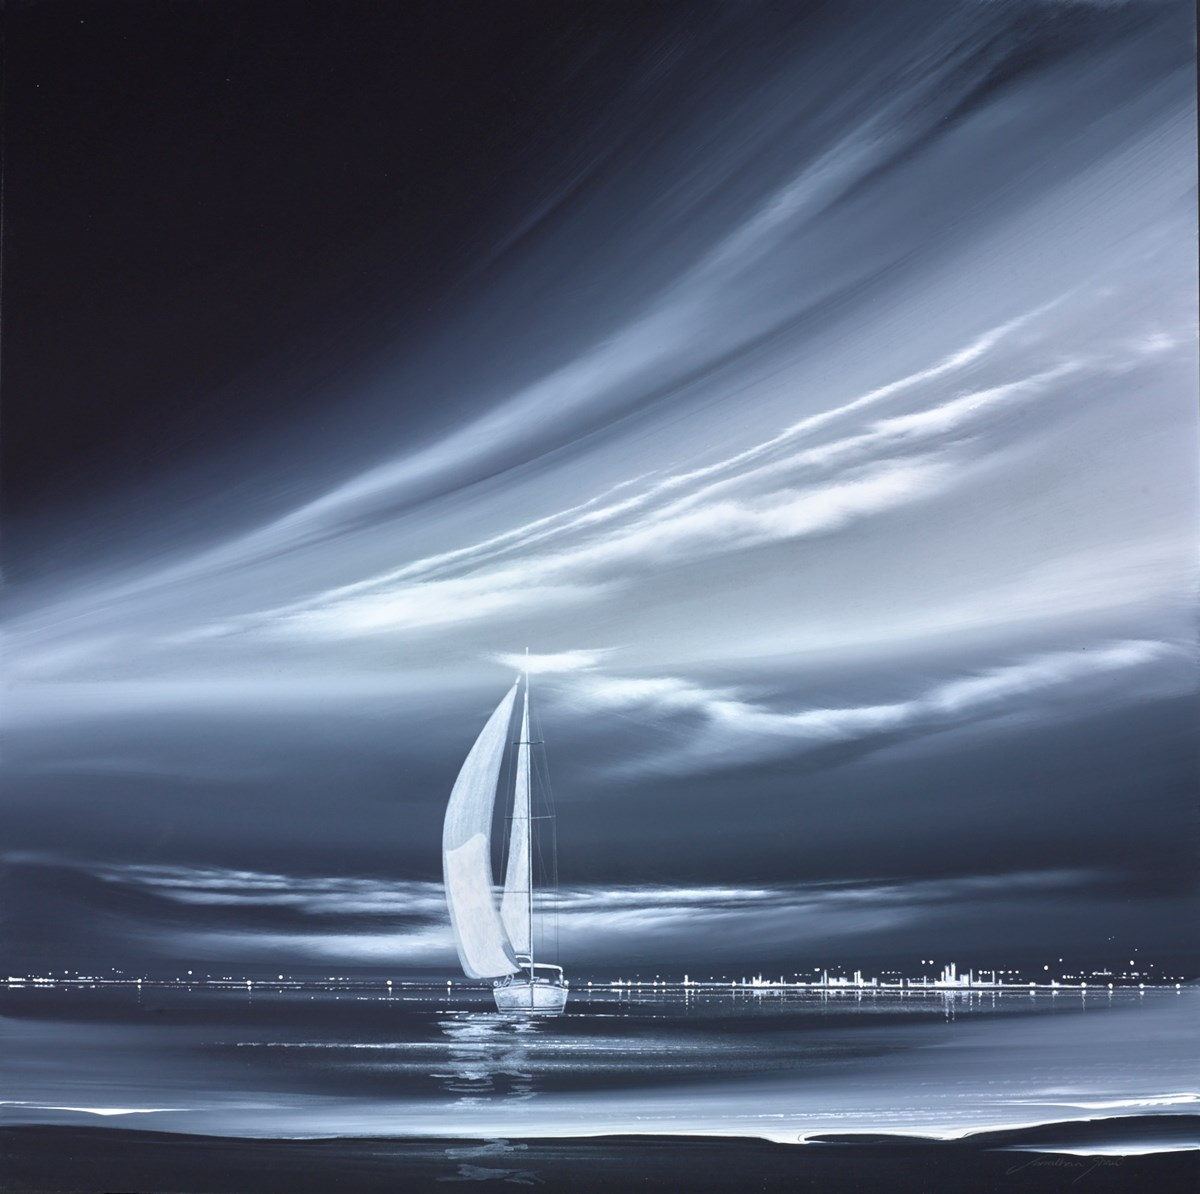 Graphite Boat III by jonathan shaw -  sized 24x24 inches. Available from Whitewall Galleries